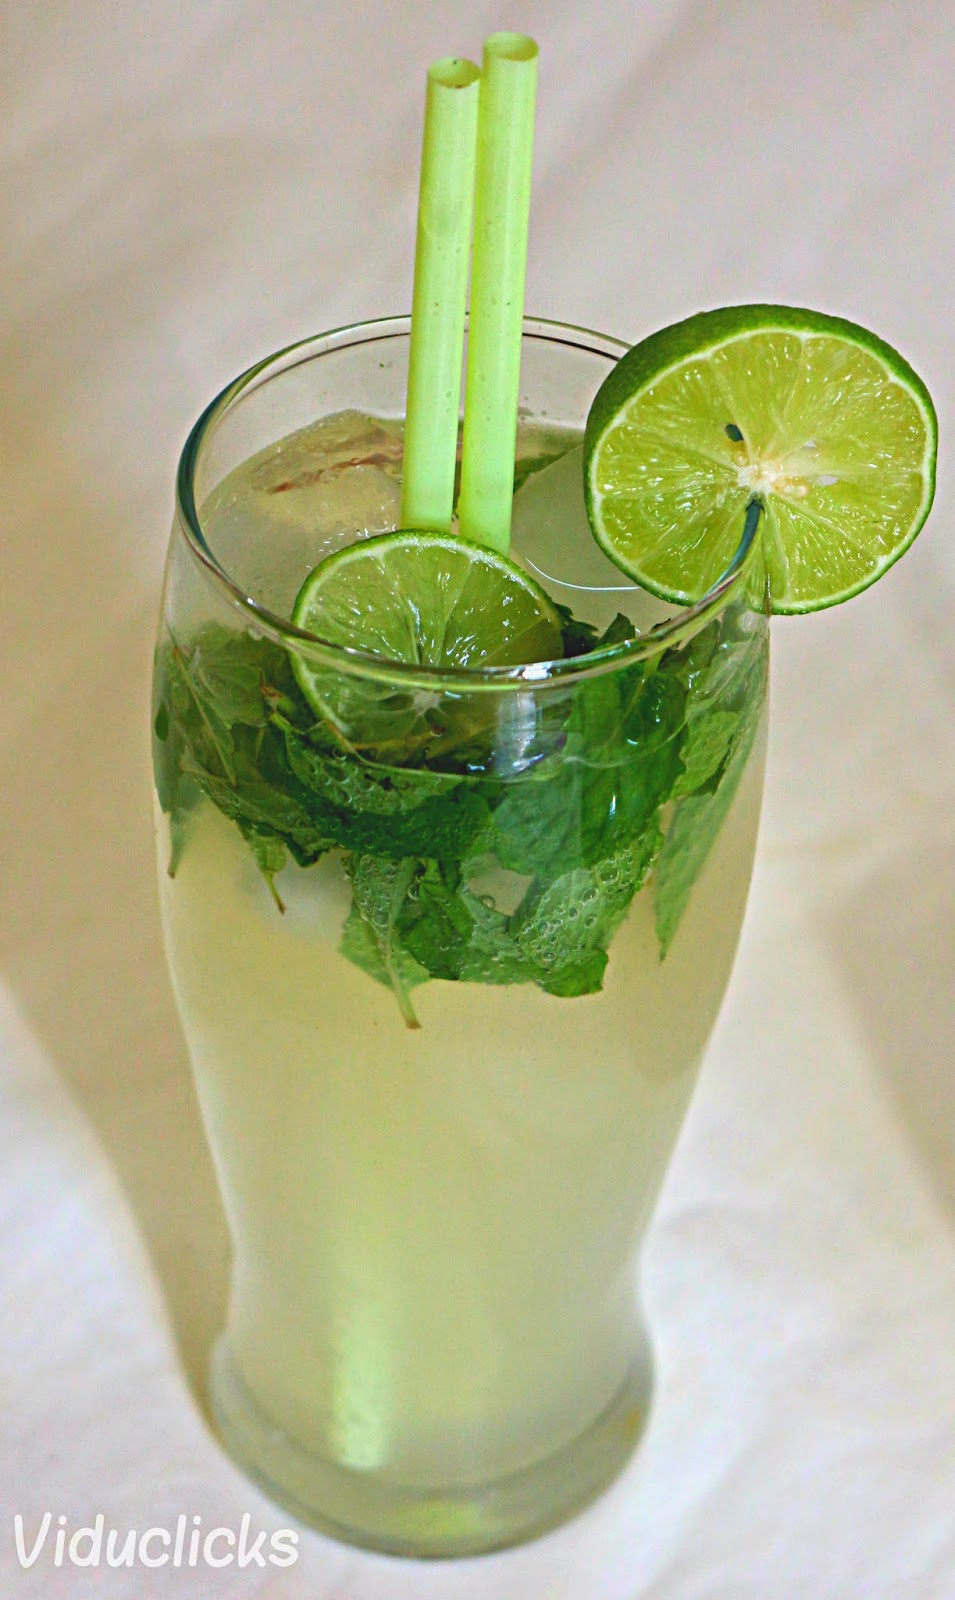 ... : NIMBU NARIYAL KI SHIKANJI (LIME AND TENDER COCONUT COOLER